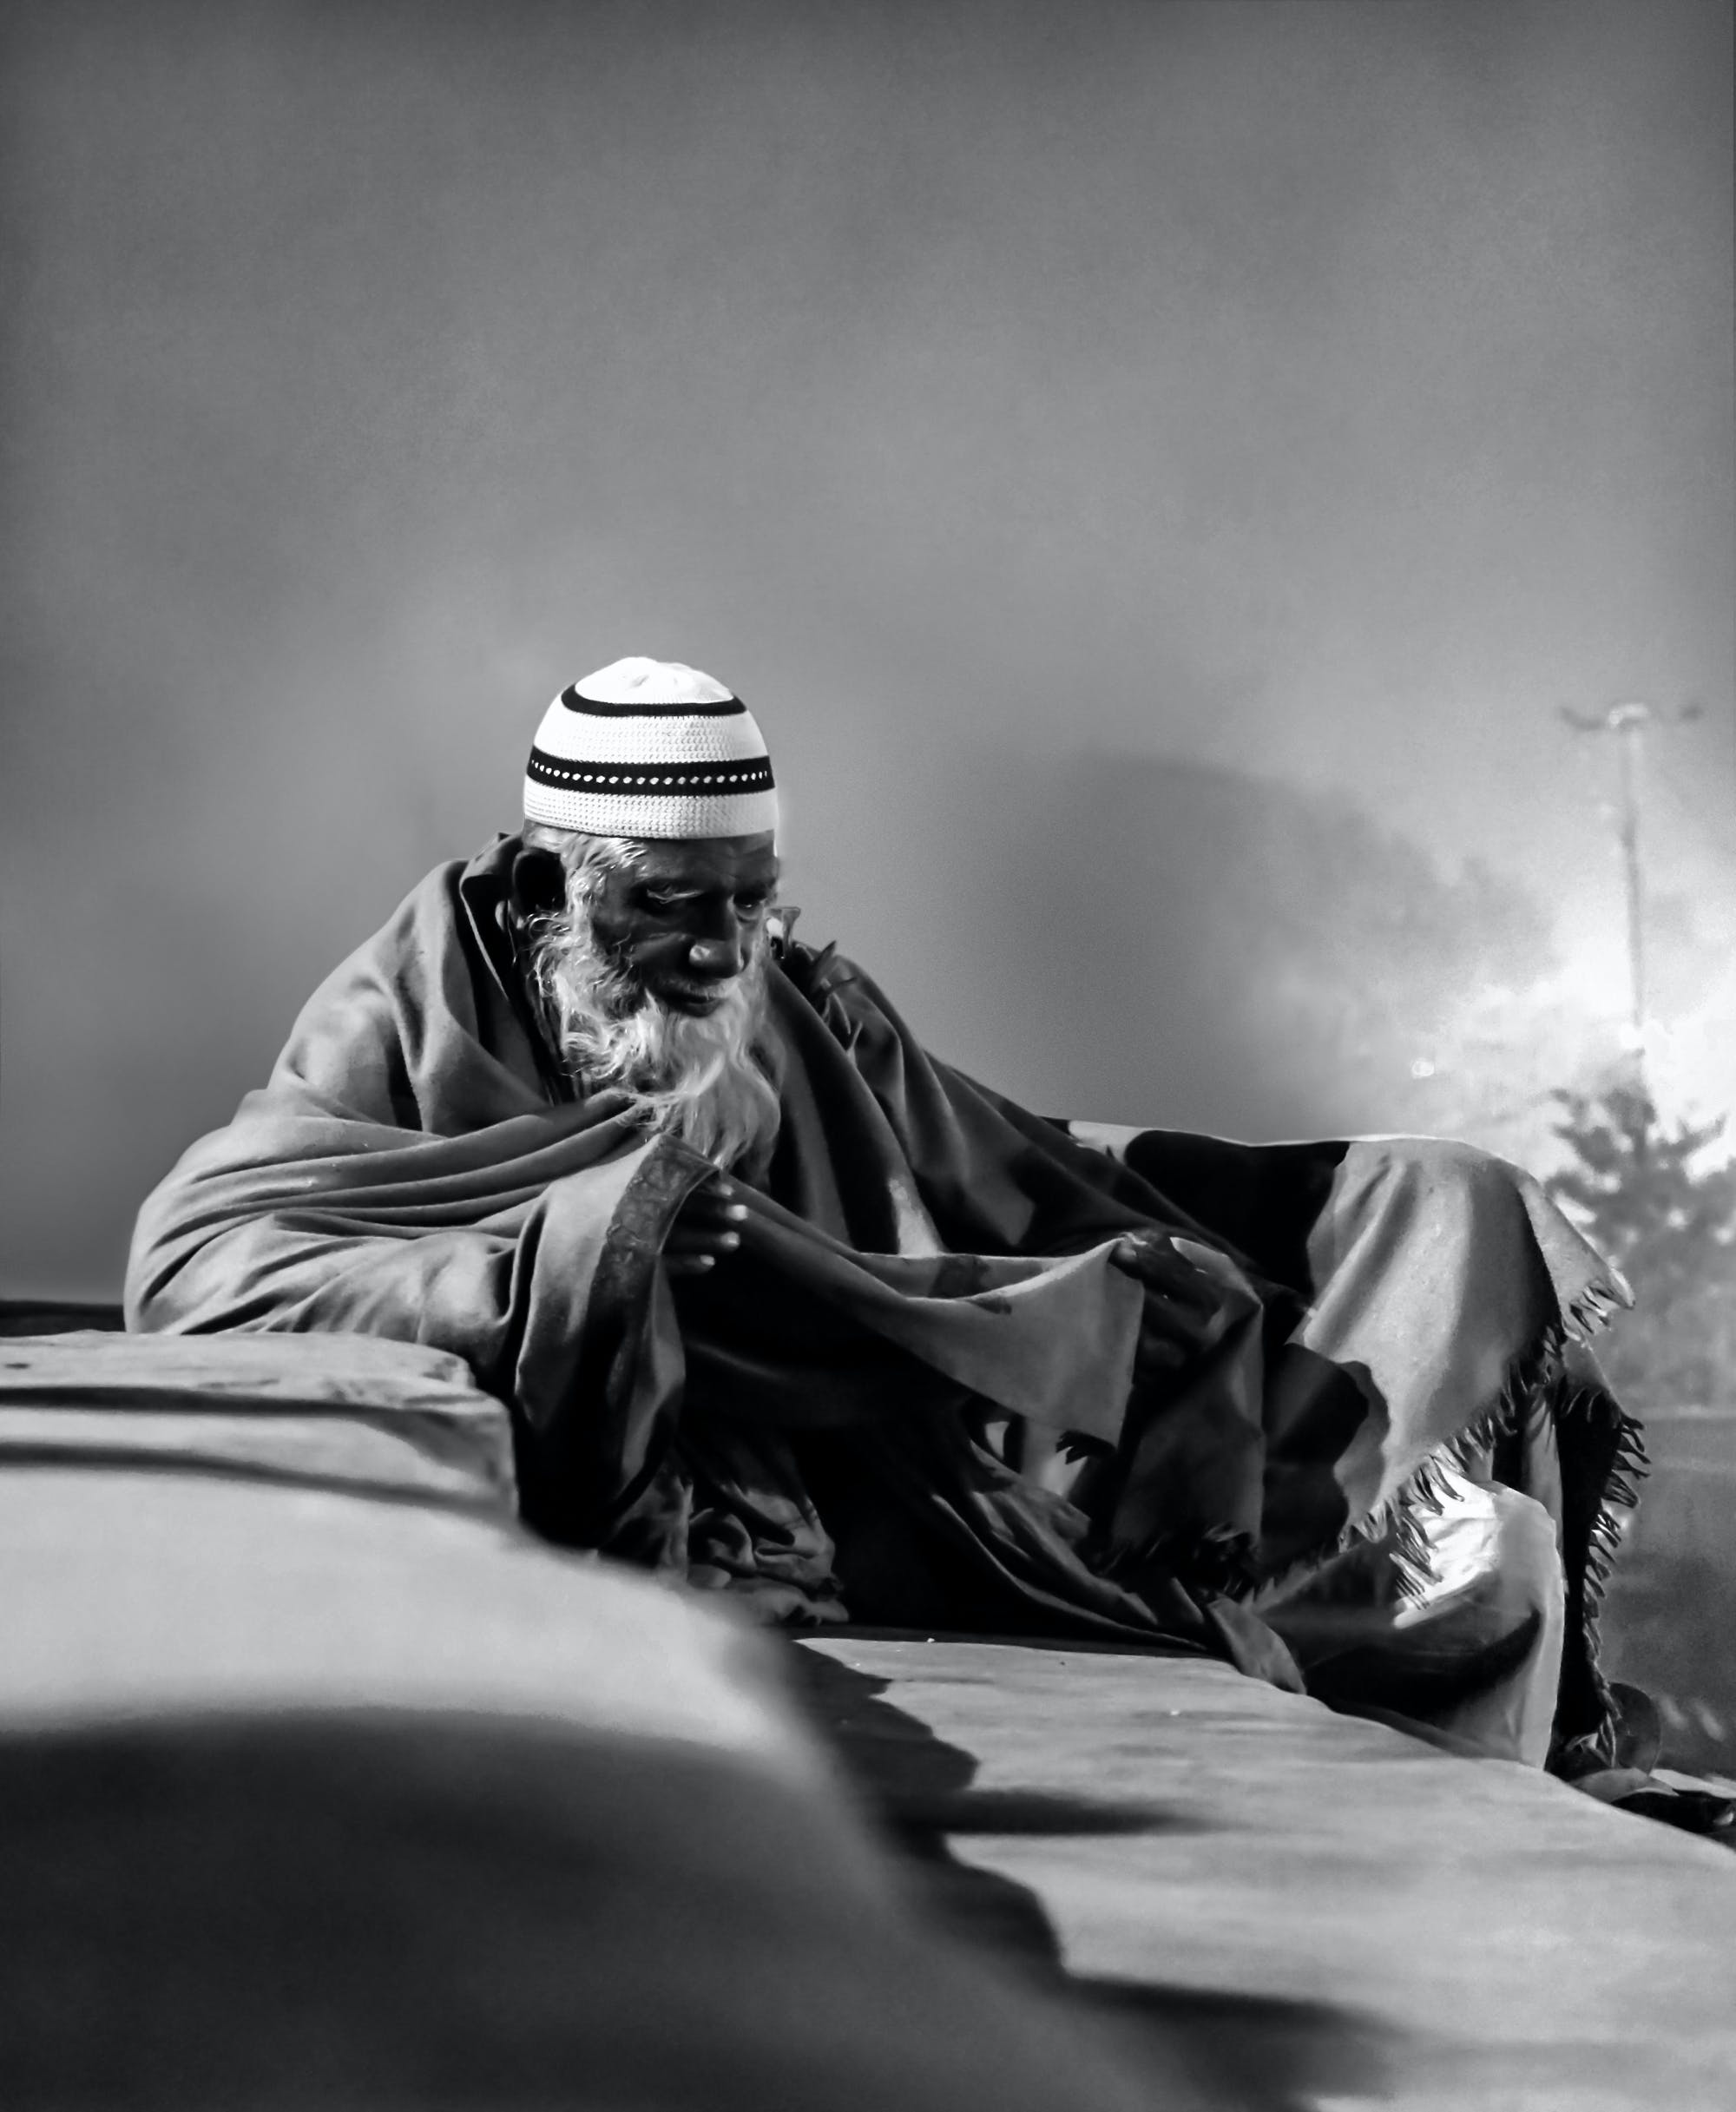 Grayscale Photo of Man With Taqiyah Cap